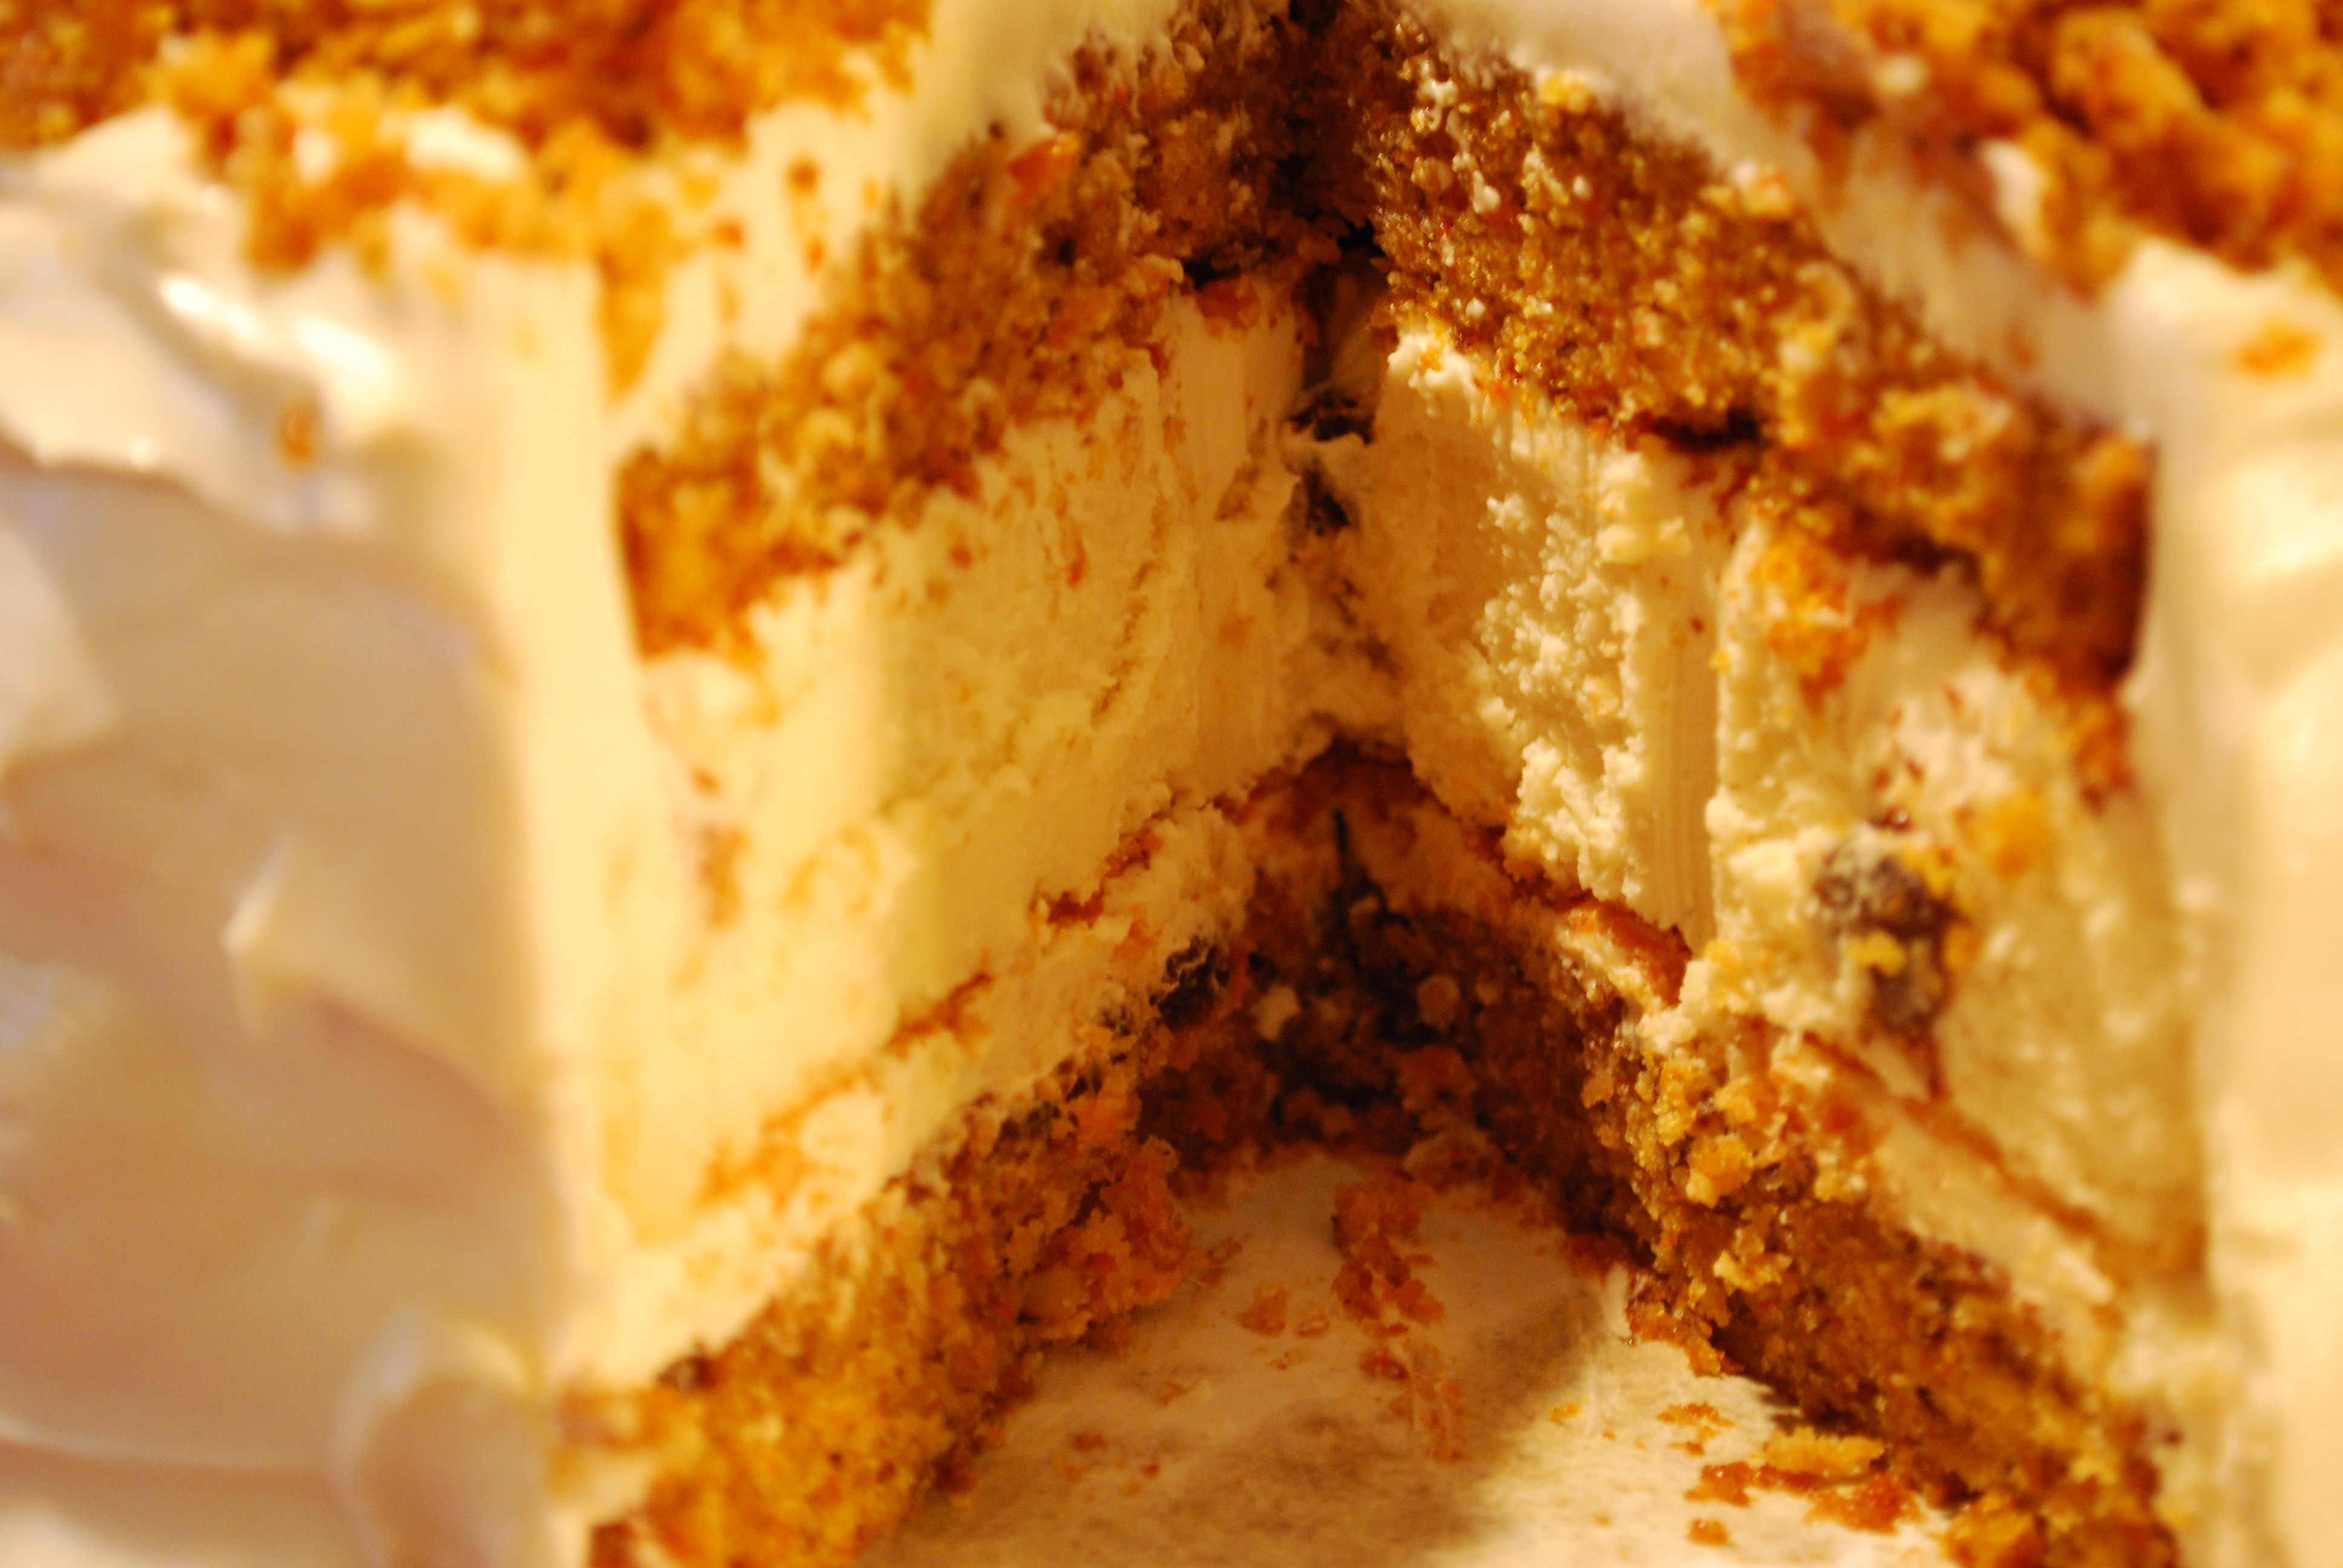 Layer upon layer of cheesecake heaven!